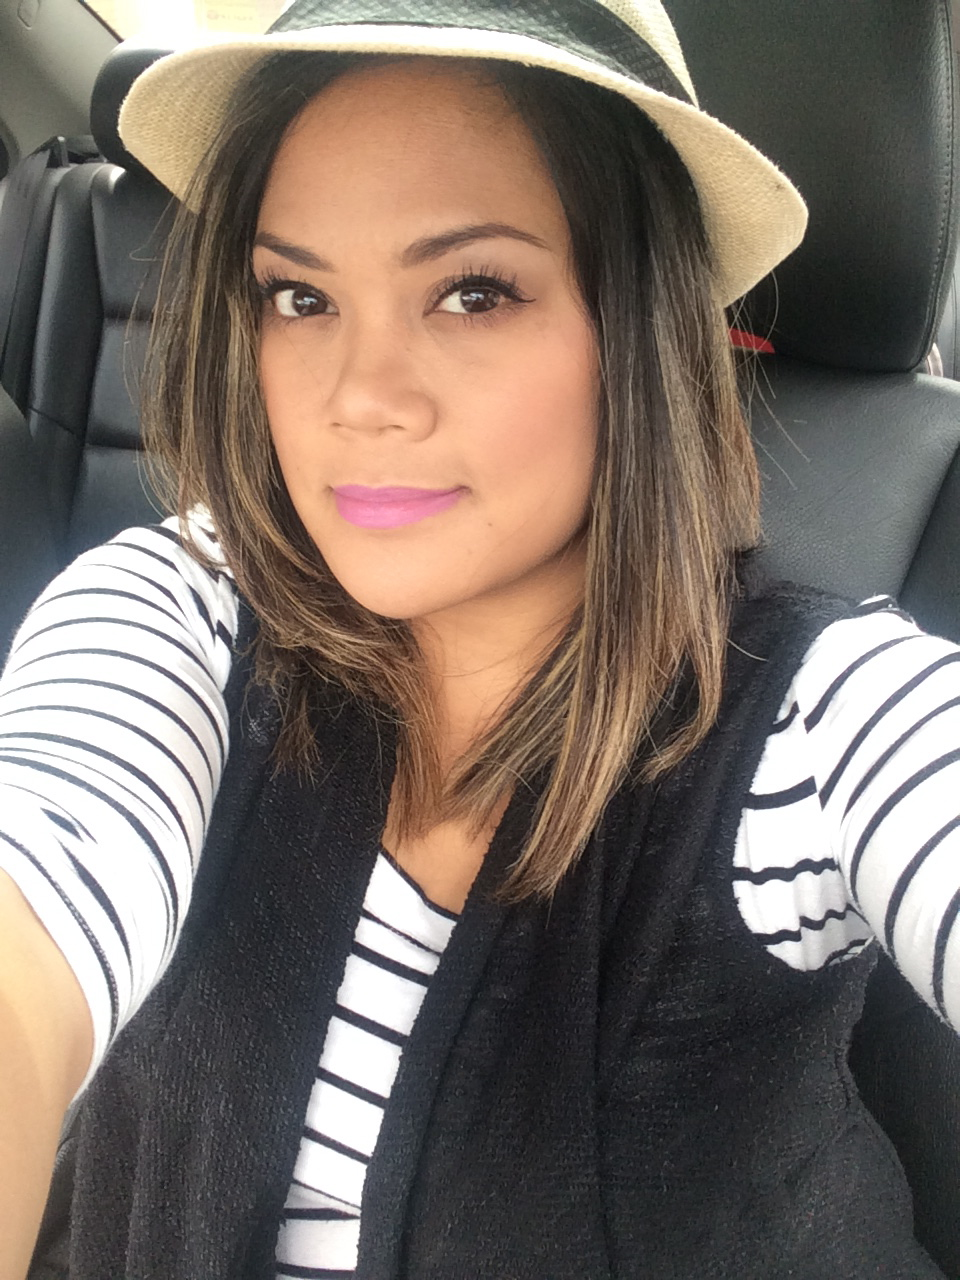 Midorilei wears a black and white shirt, black vest, a fedora, and purple lipstick